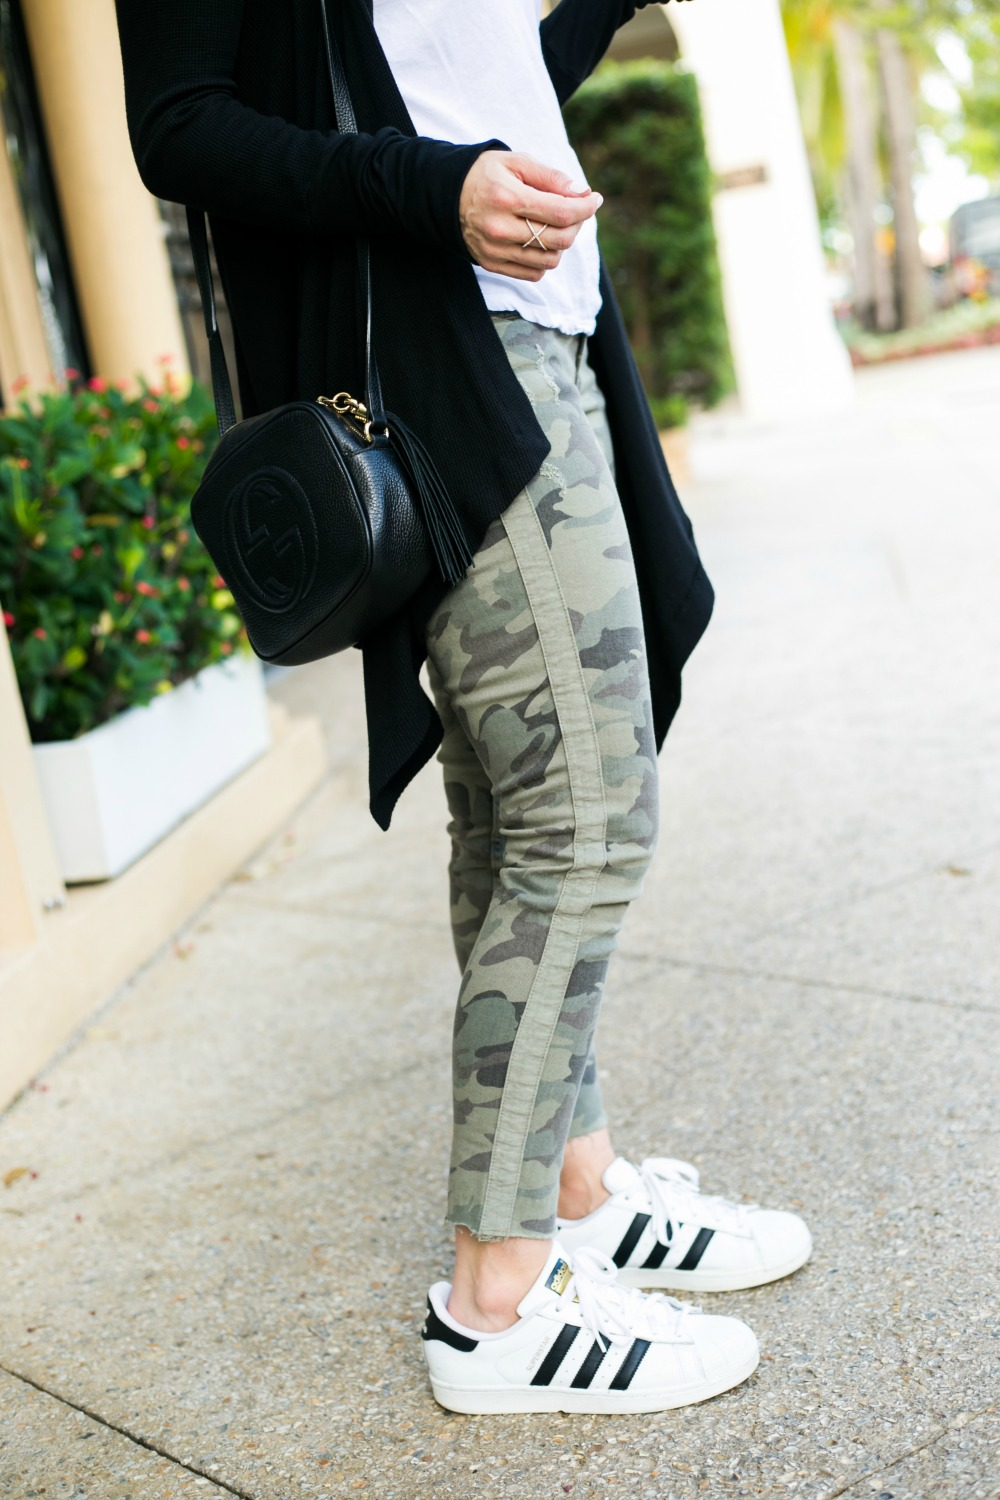 camo pants and adidas superstars: easiest fall weekend style | #fallstyle #casualstyle #weekendwear | Fall Trends in Warm Weather: Zara Camo Pants Two Ways featured by popular Florida fashion blogger The Modern Savvy